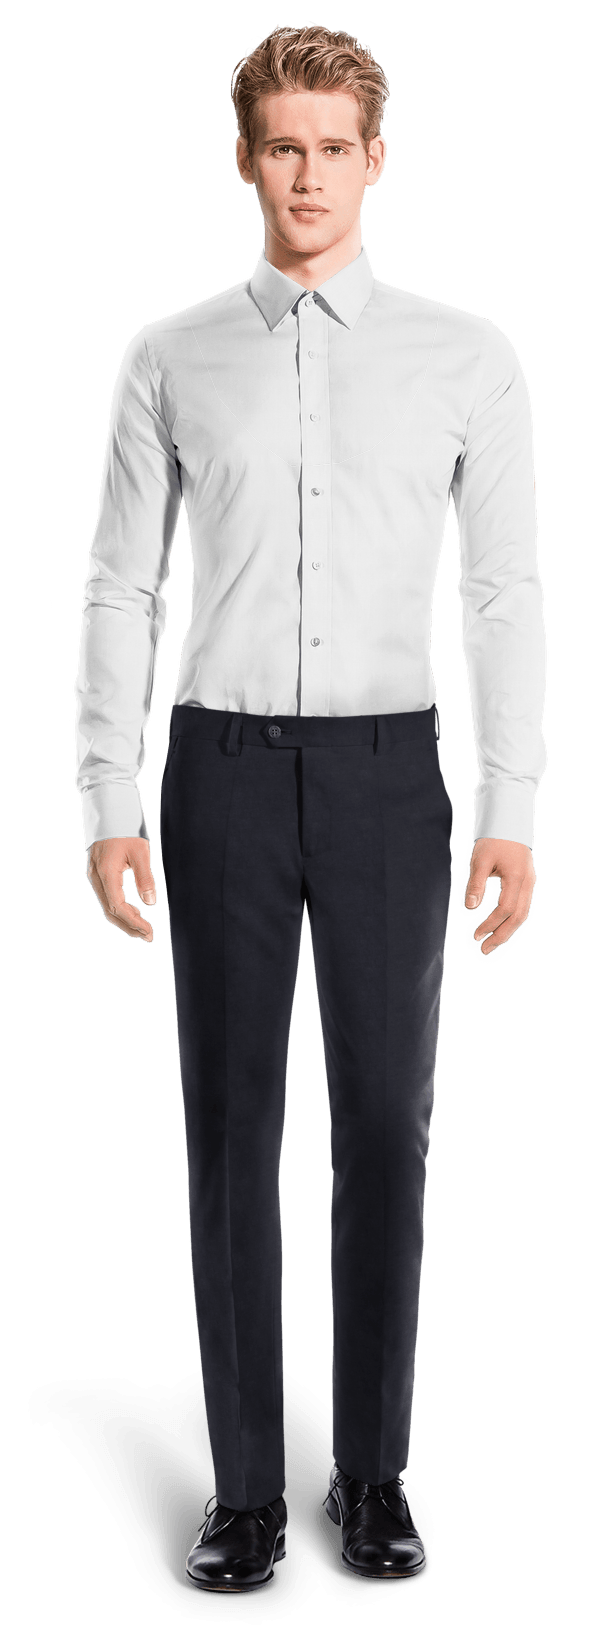 Pantaloni chino slim fit blu